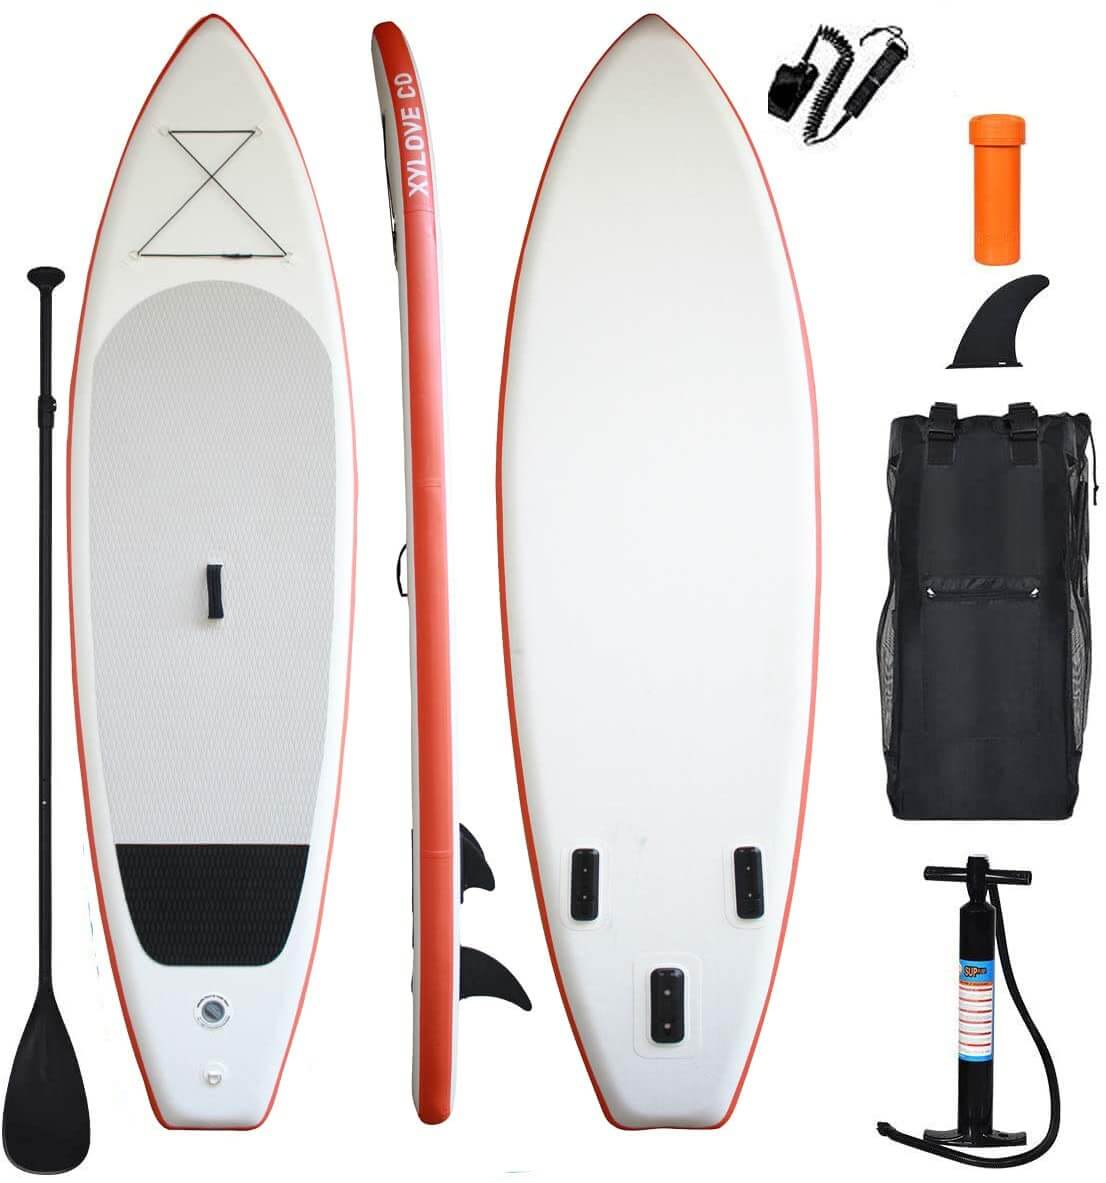 top, bottom, and side view of the xylove co sup with accessories